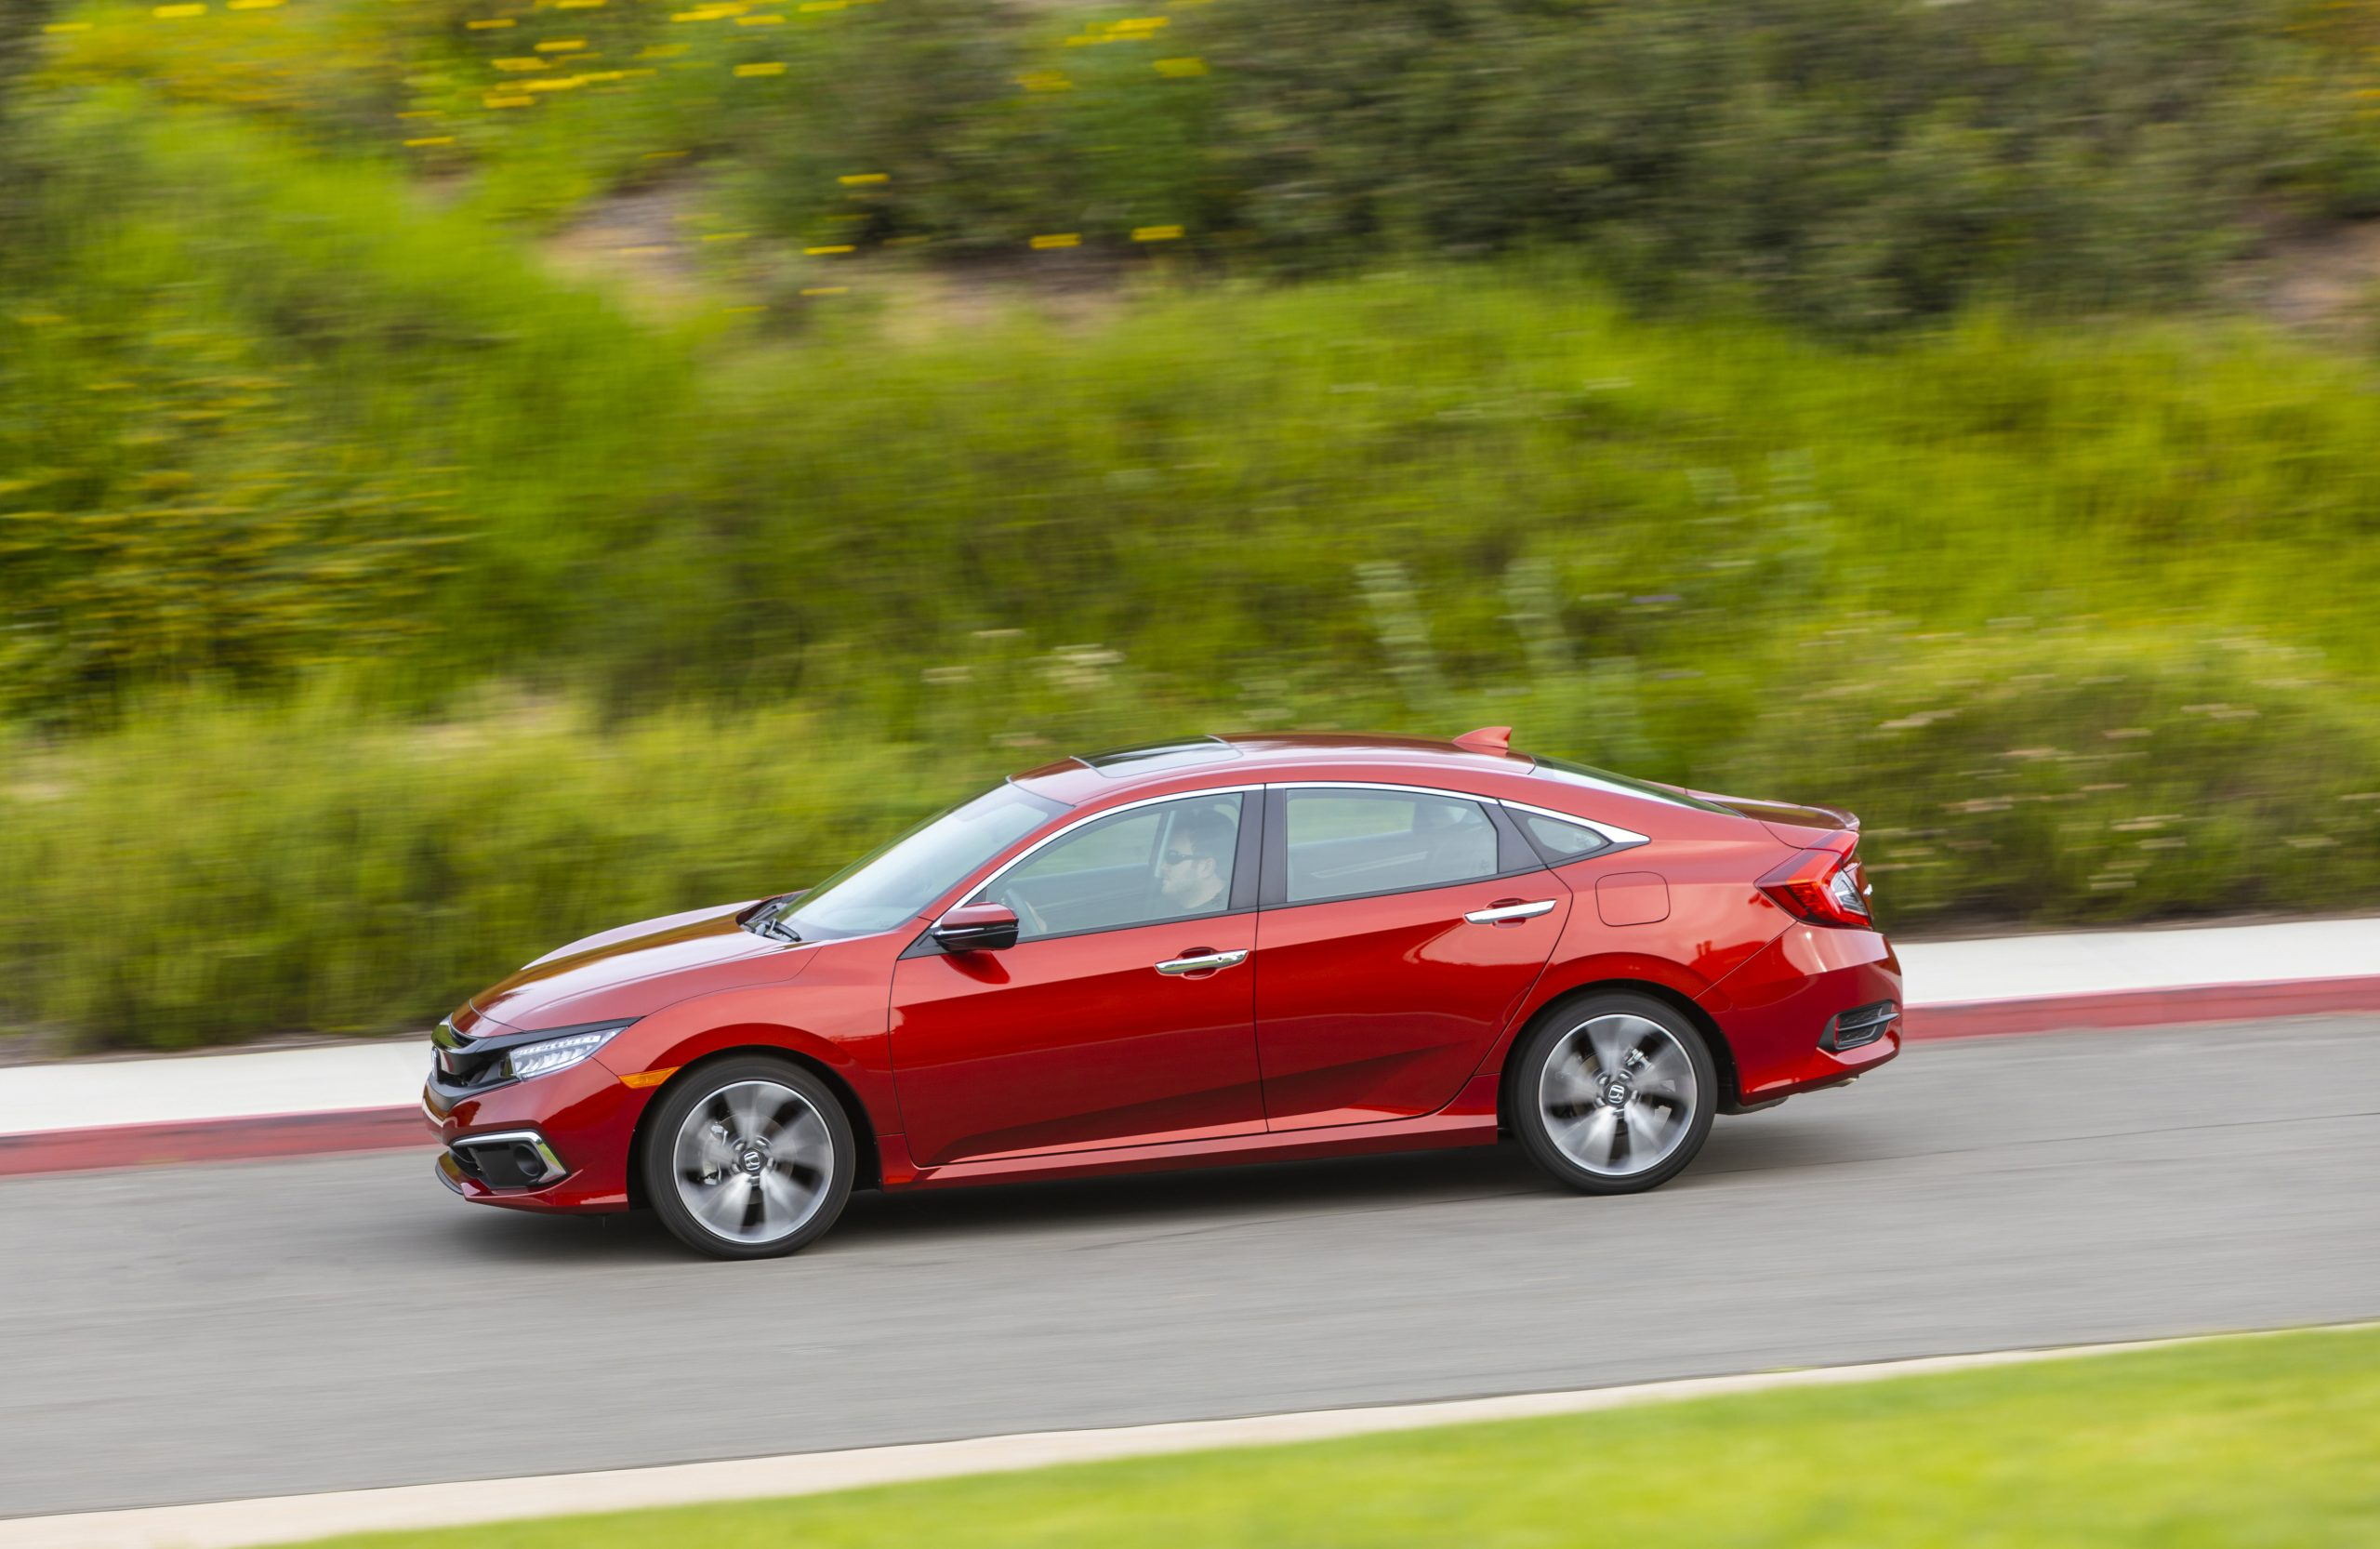 a red Honda Civic model driving at speed on a scenic country road